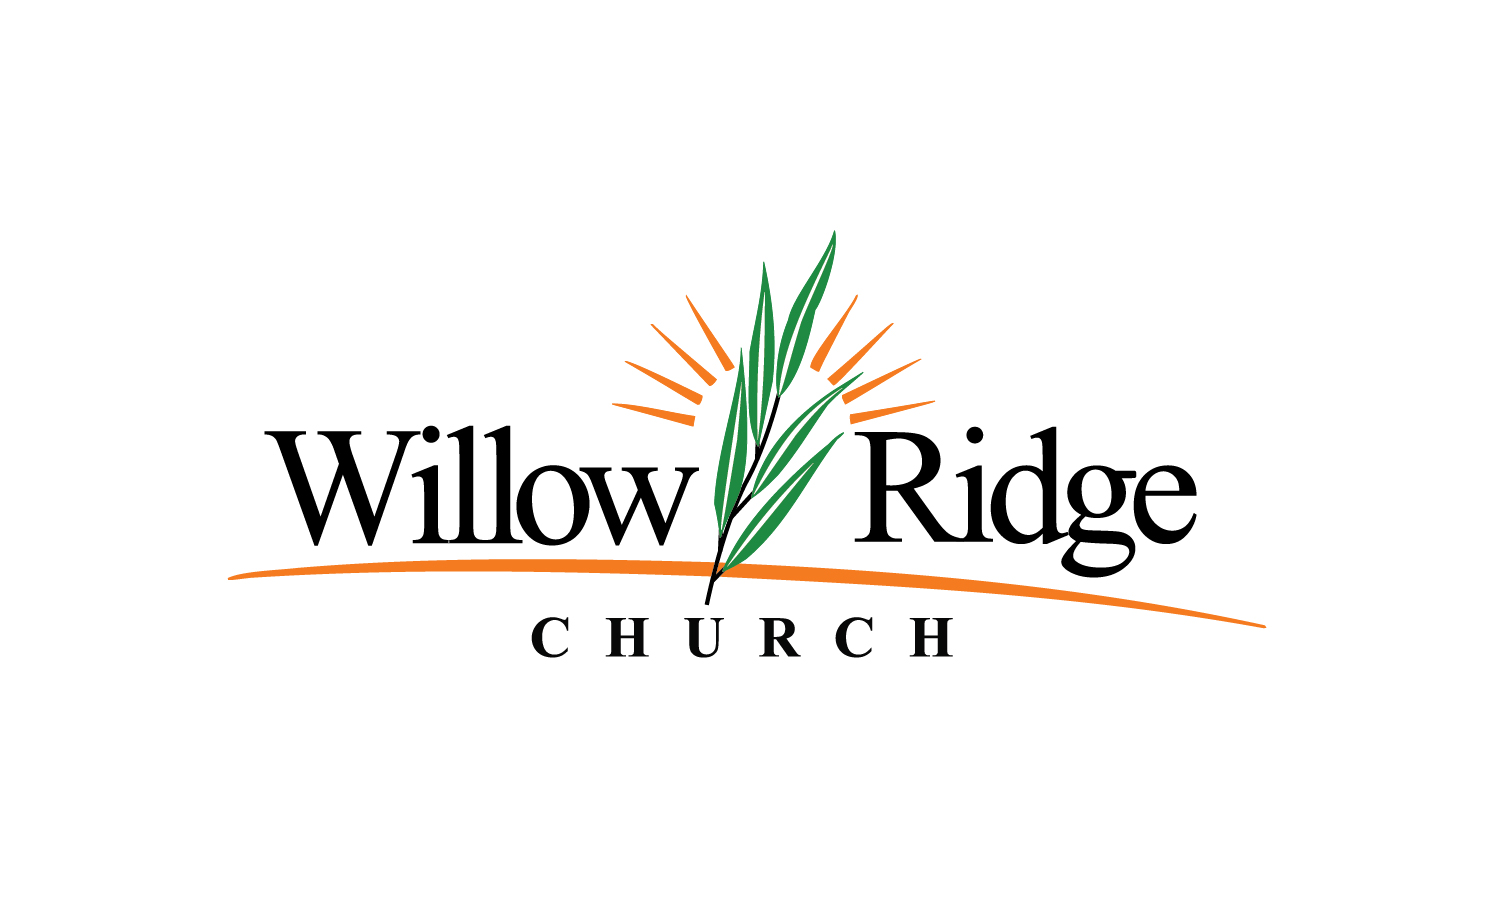 Willow Ridge Church Logo